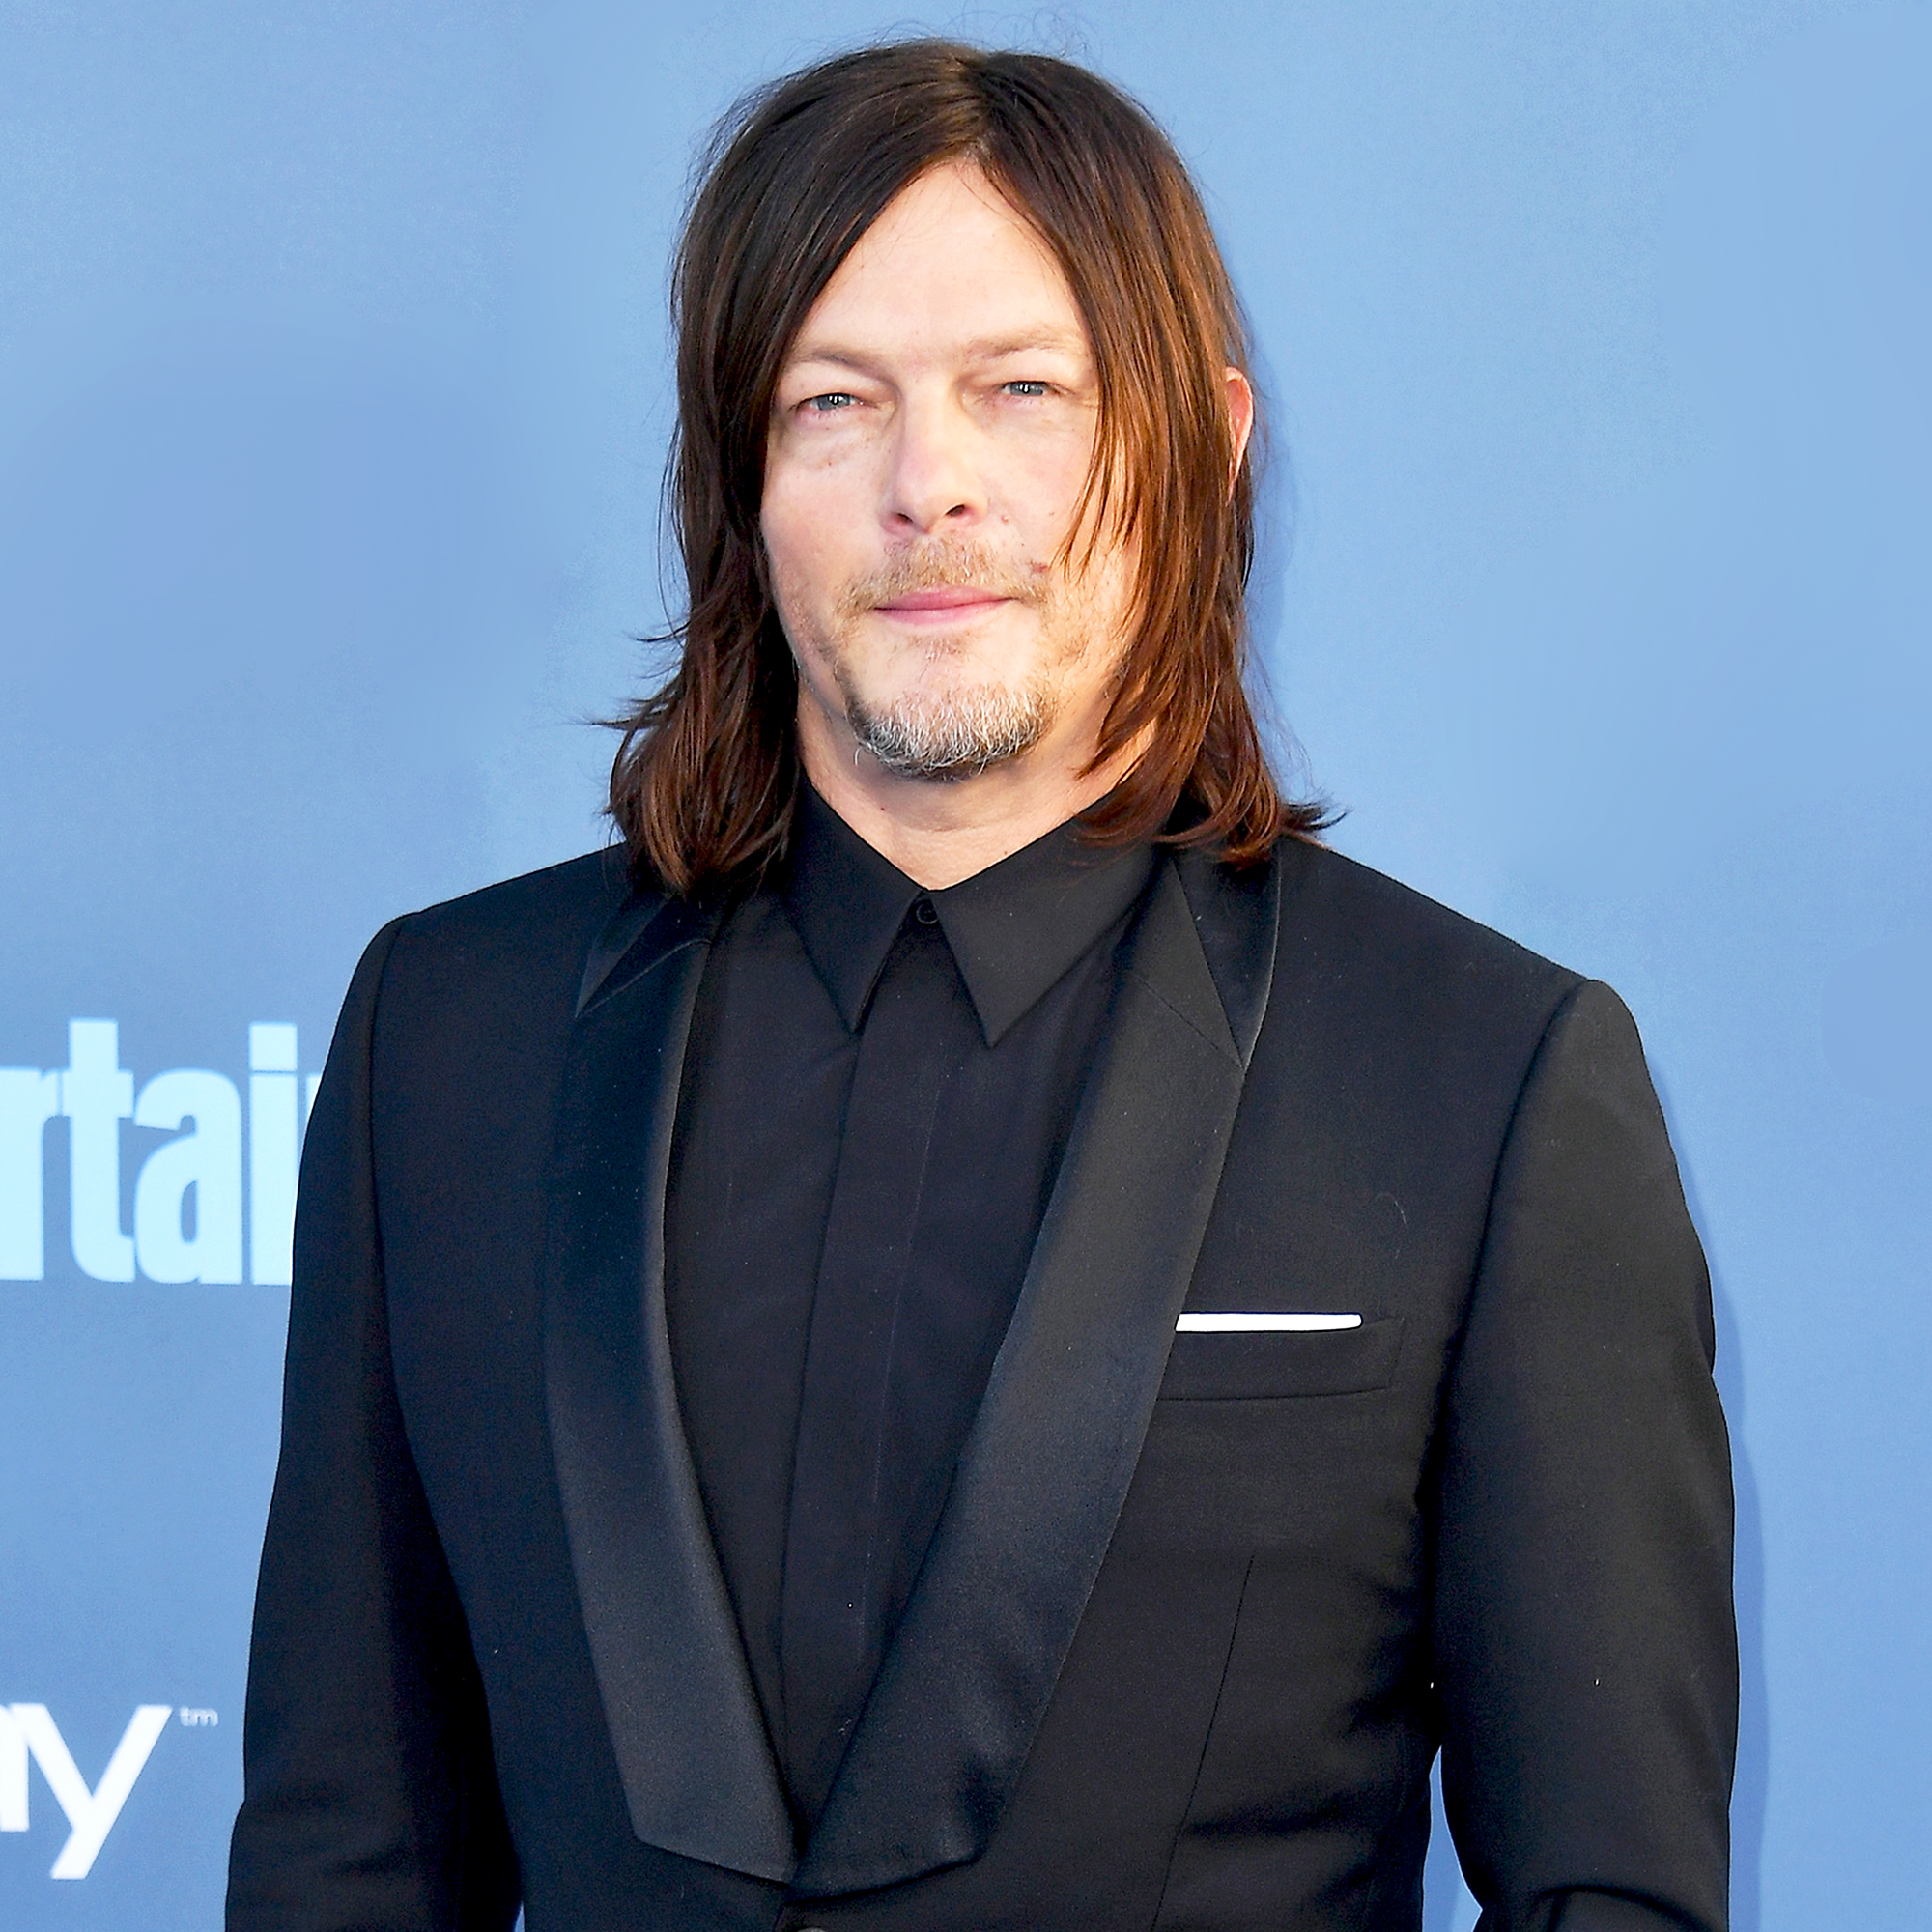 Walking Dead Actor Takes Cat to Los Angeles